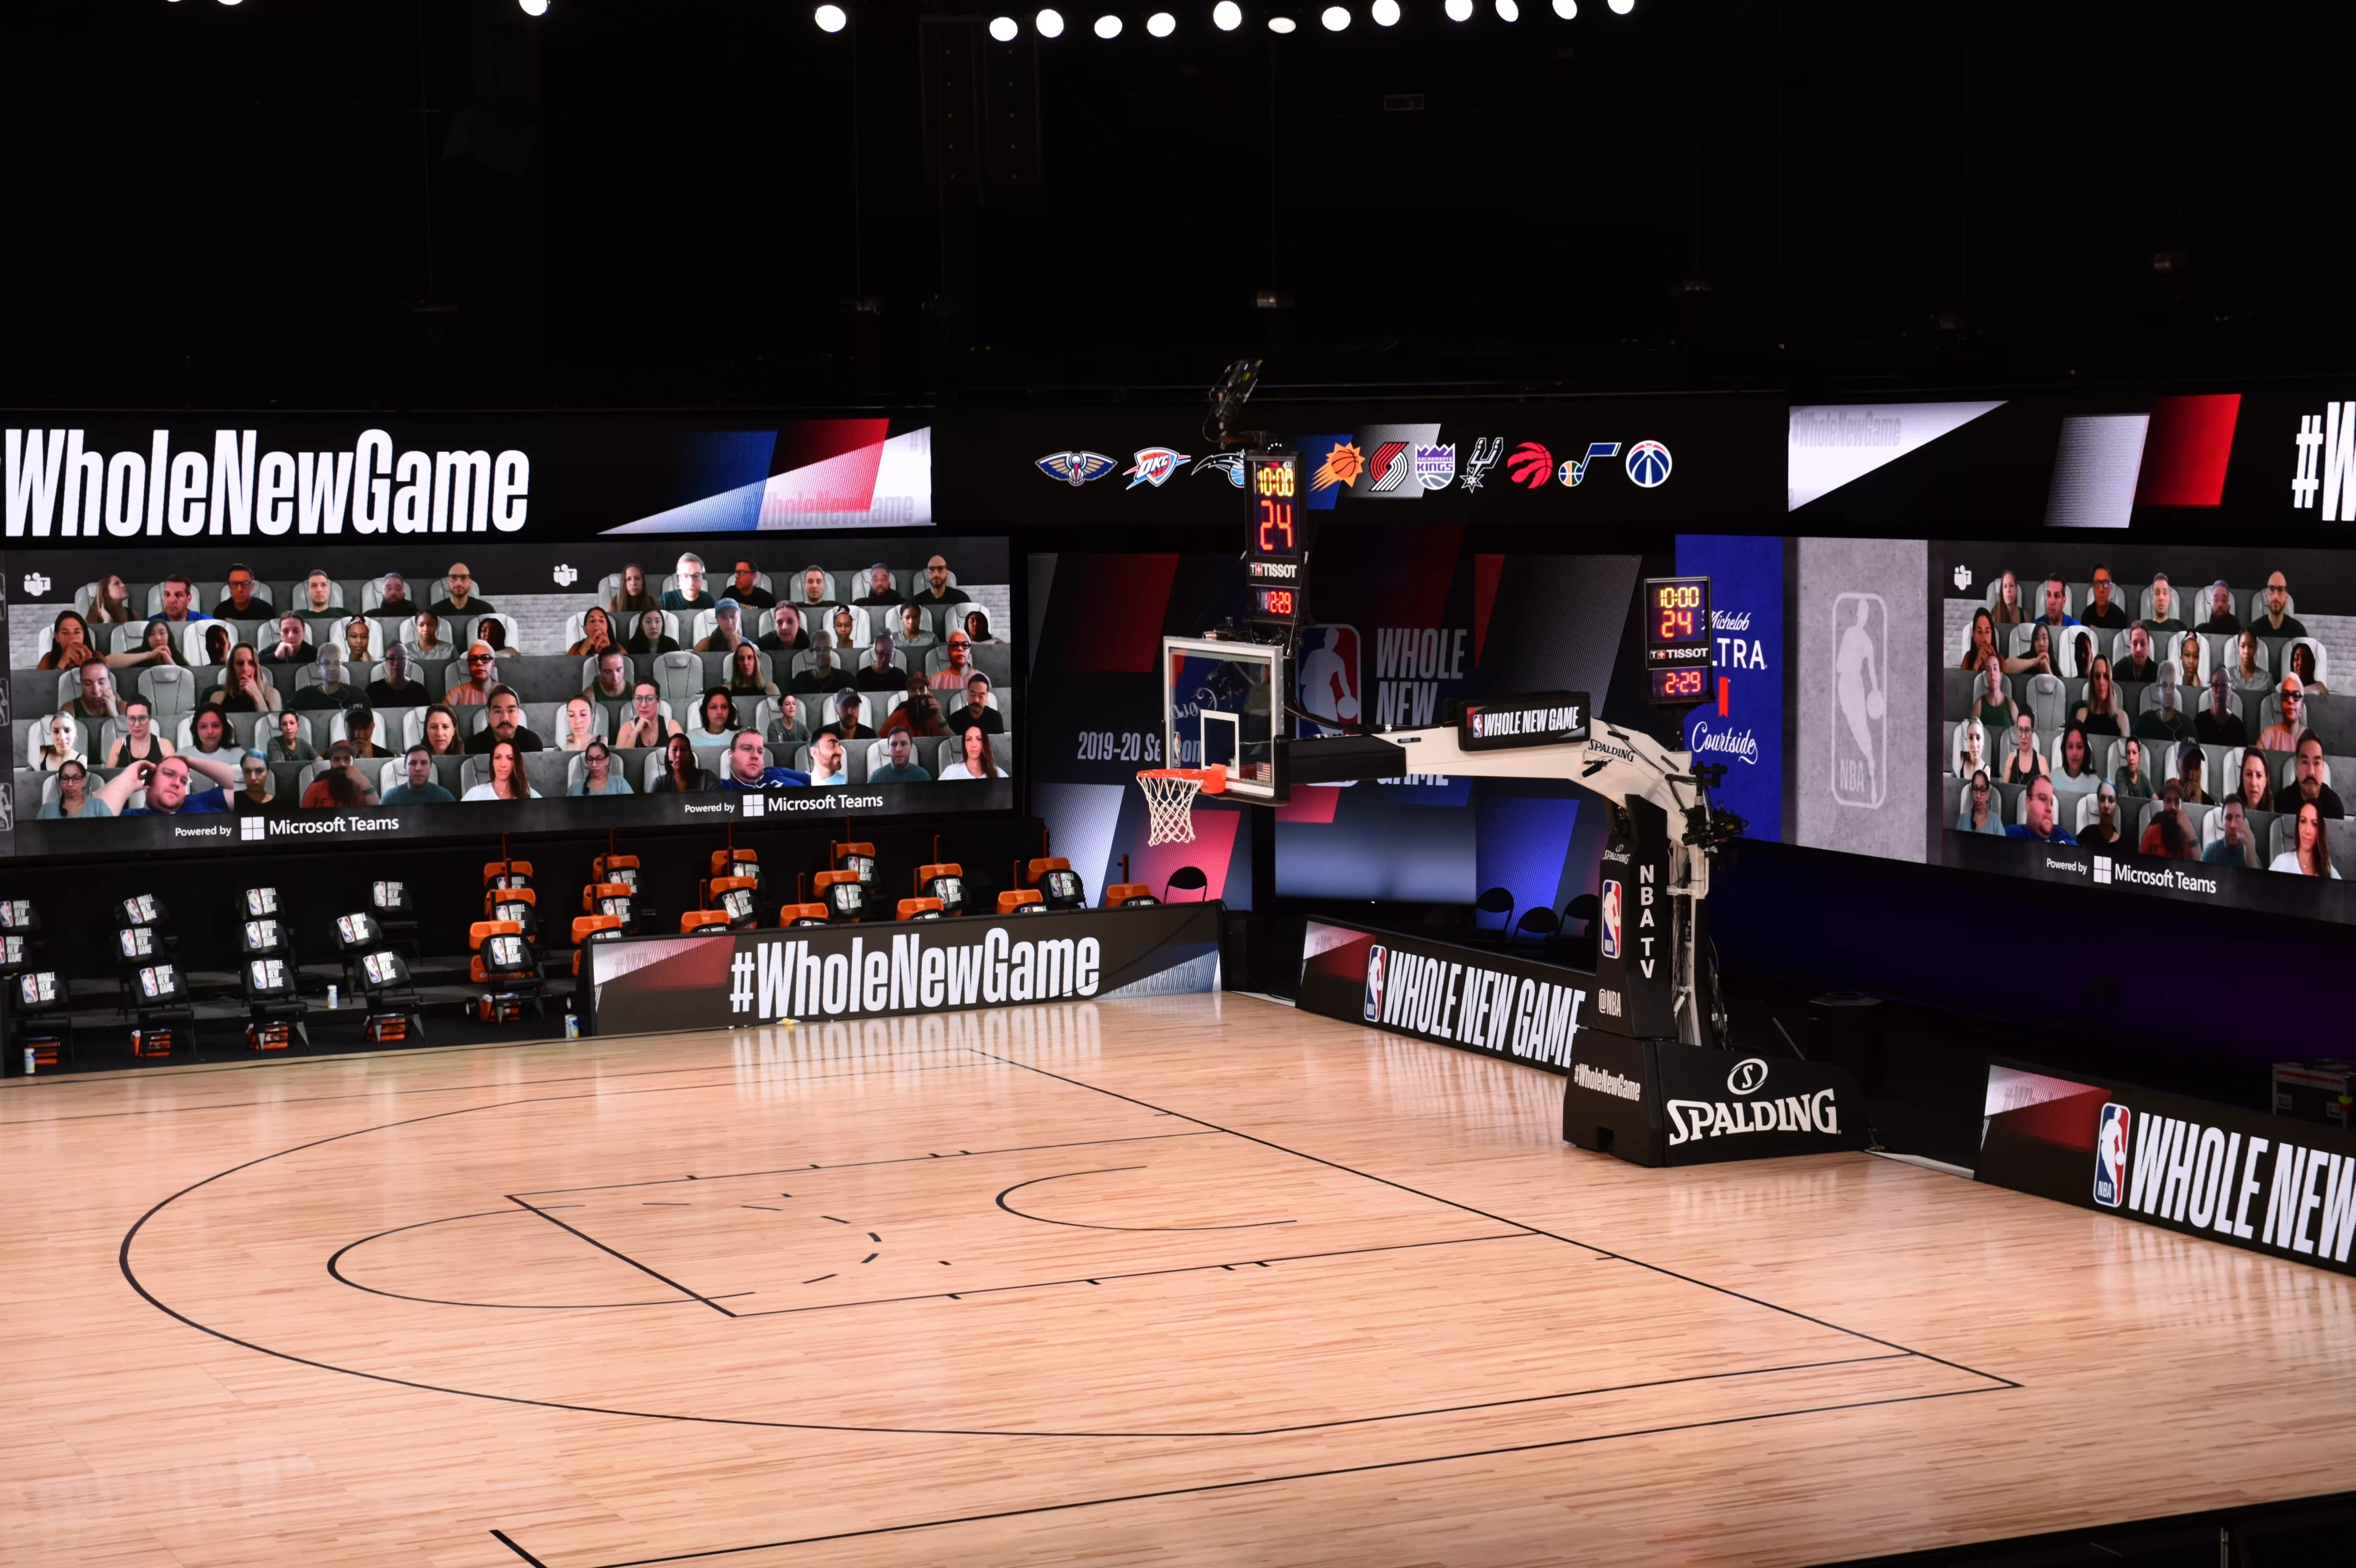 The screen is placed on three sides of the court